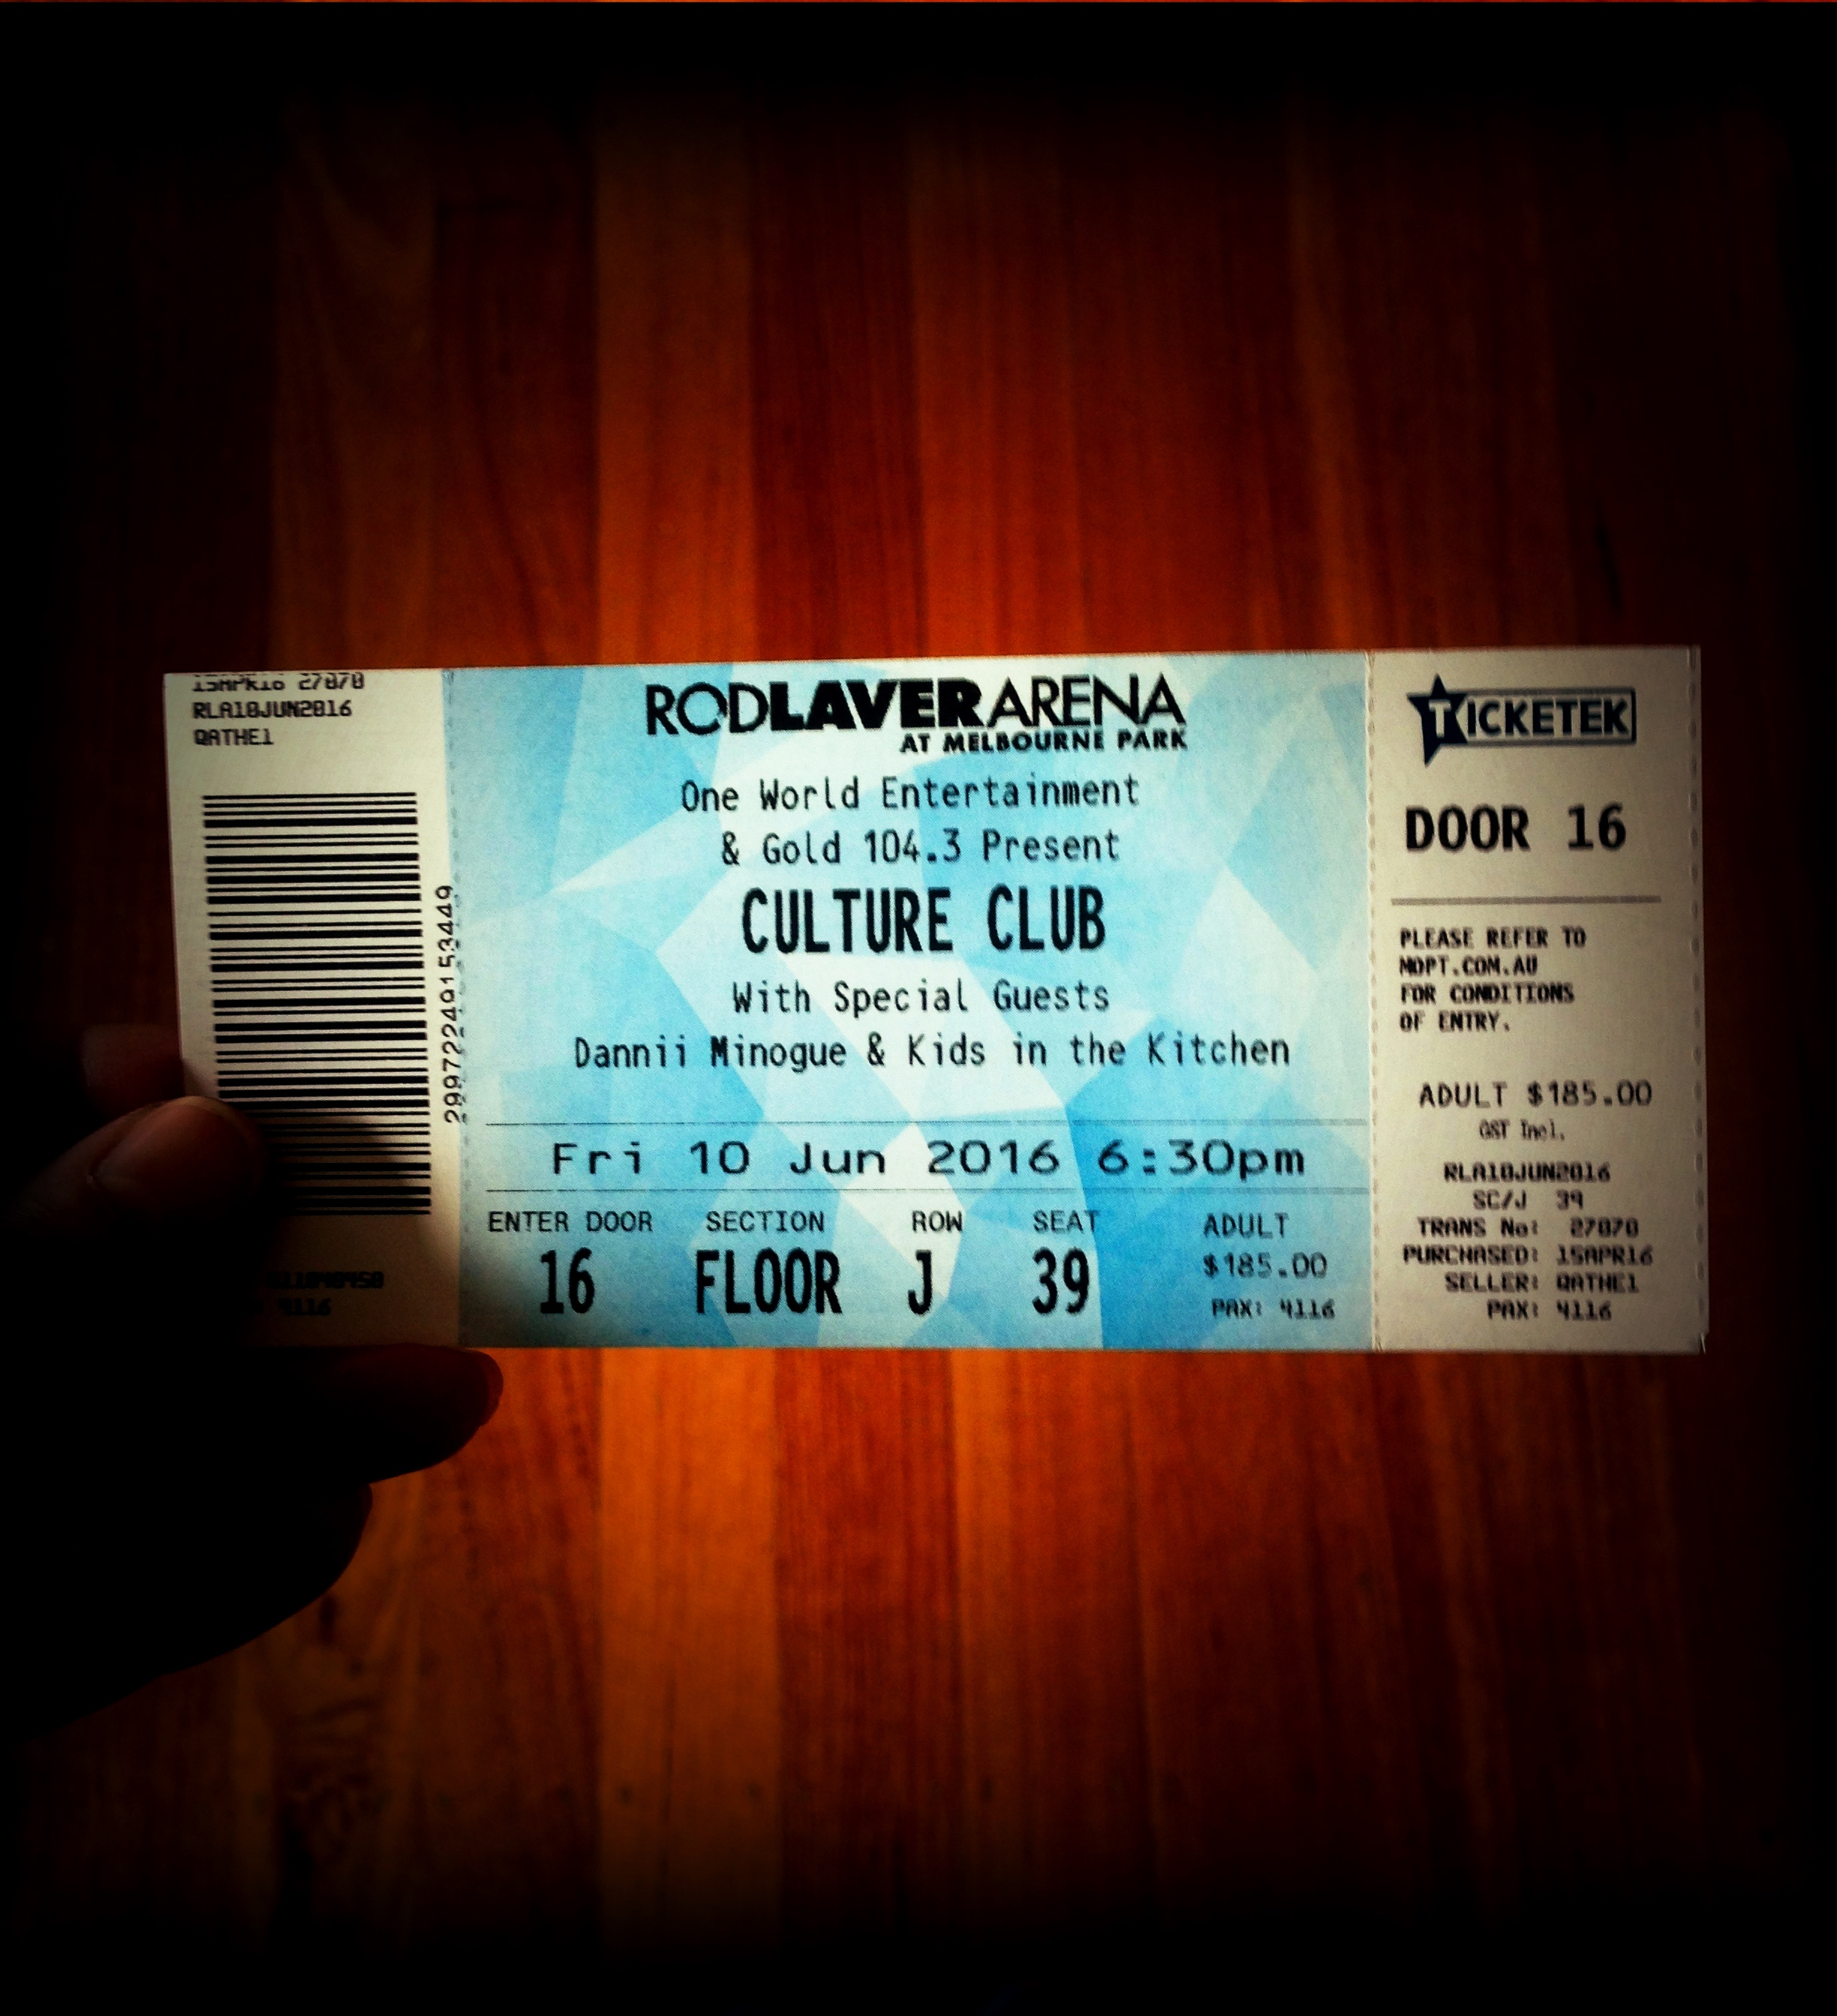 Dreams came true with this magical ticket to Culture Club